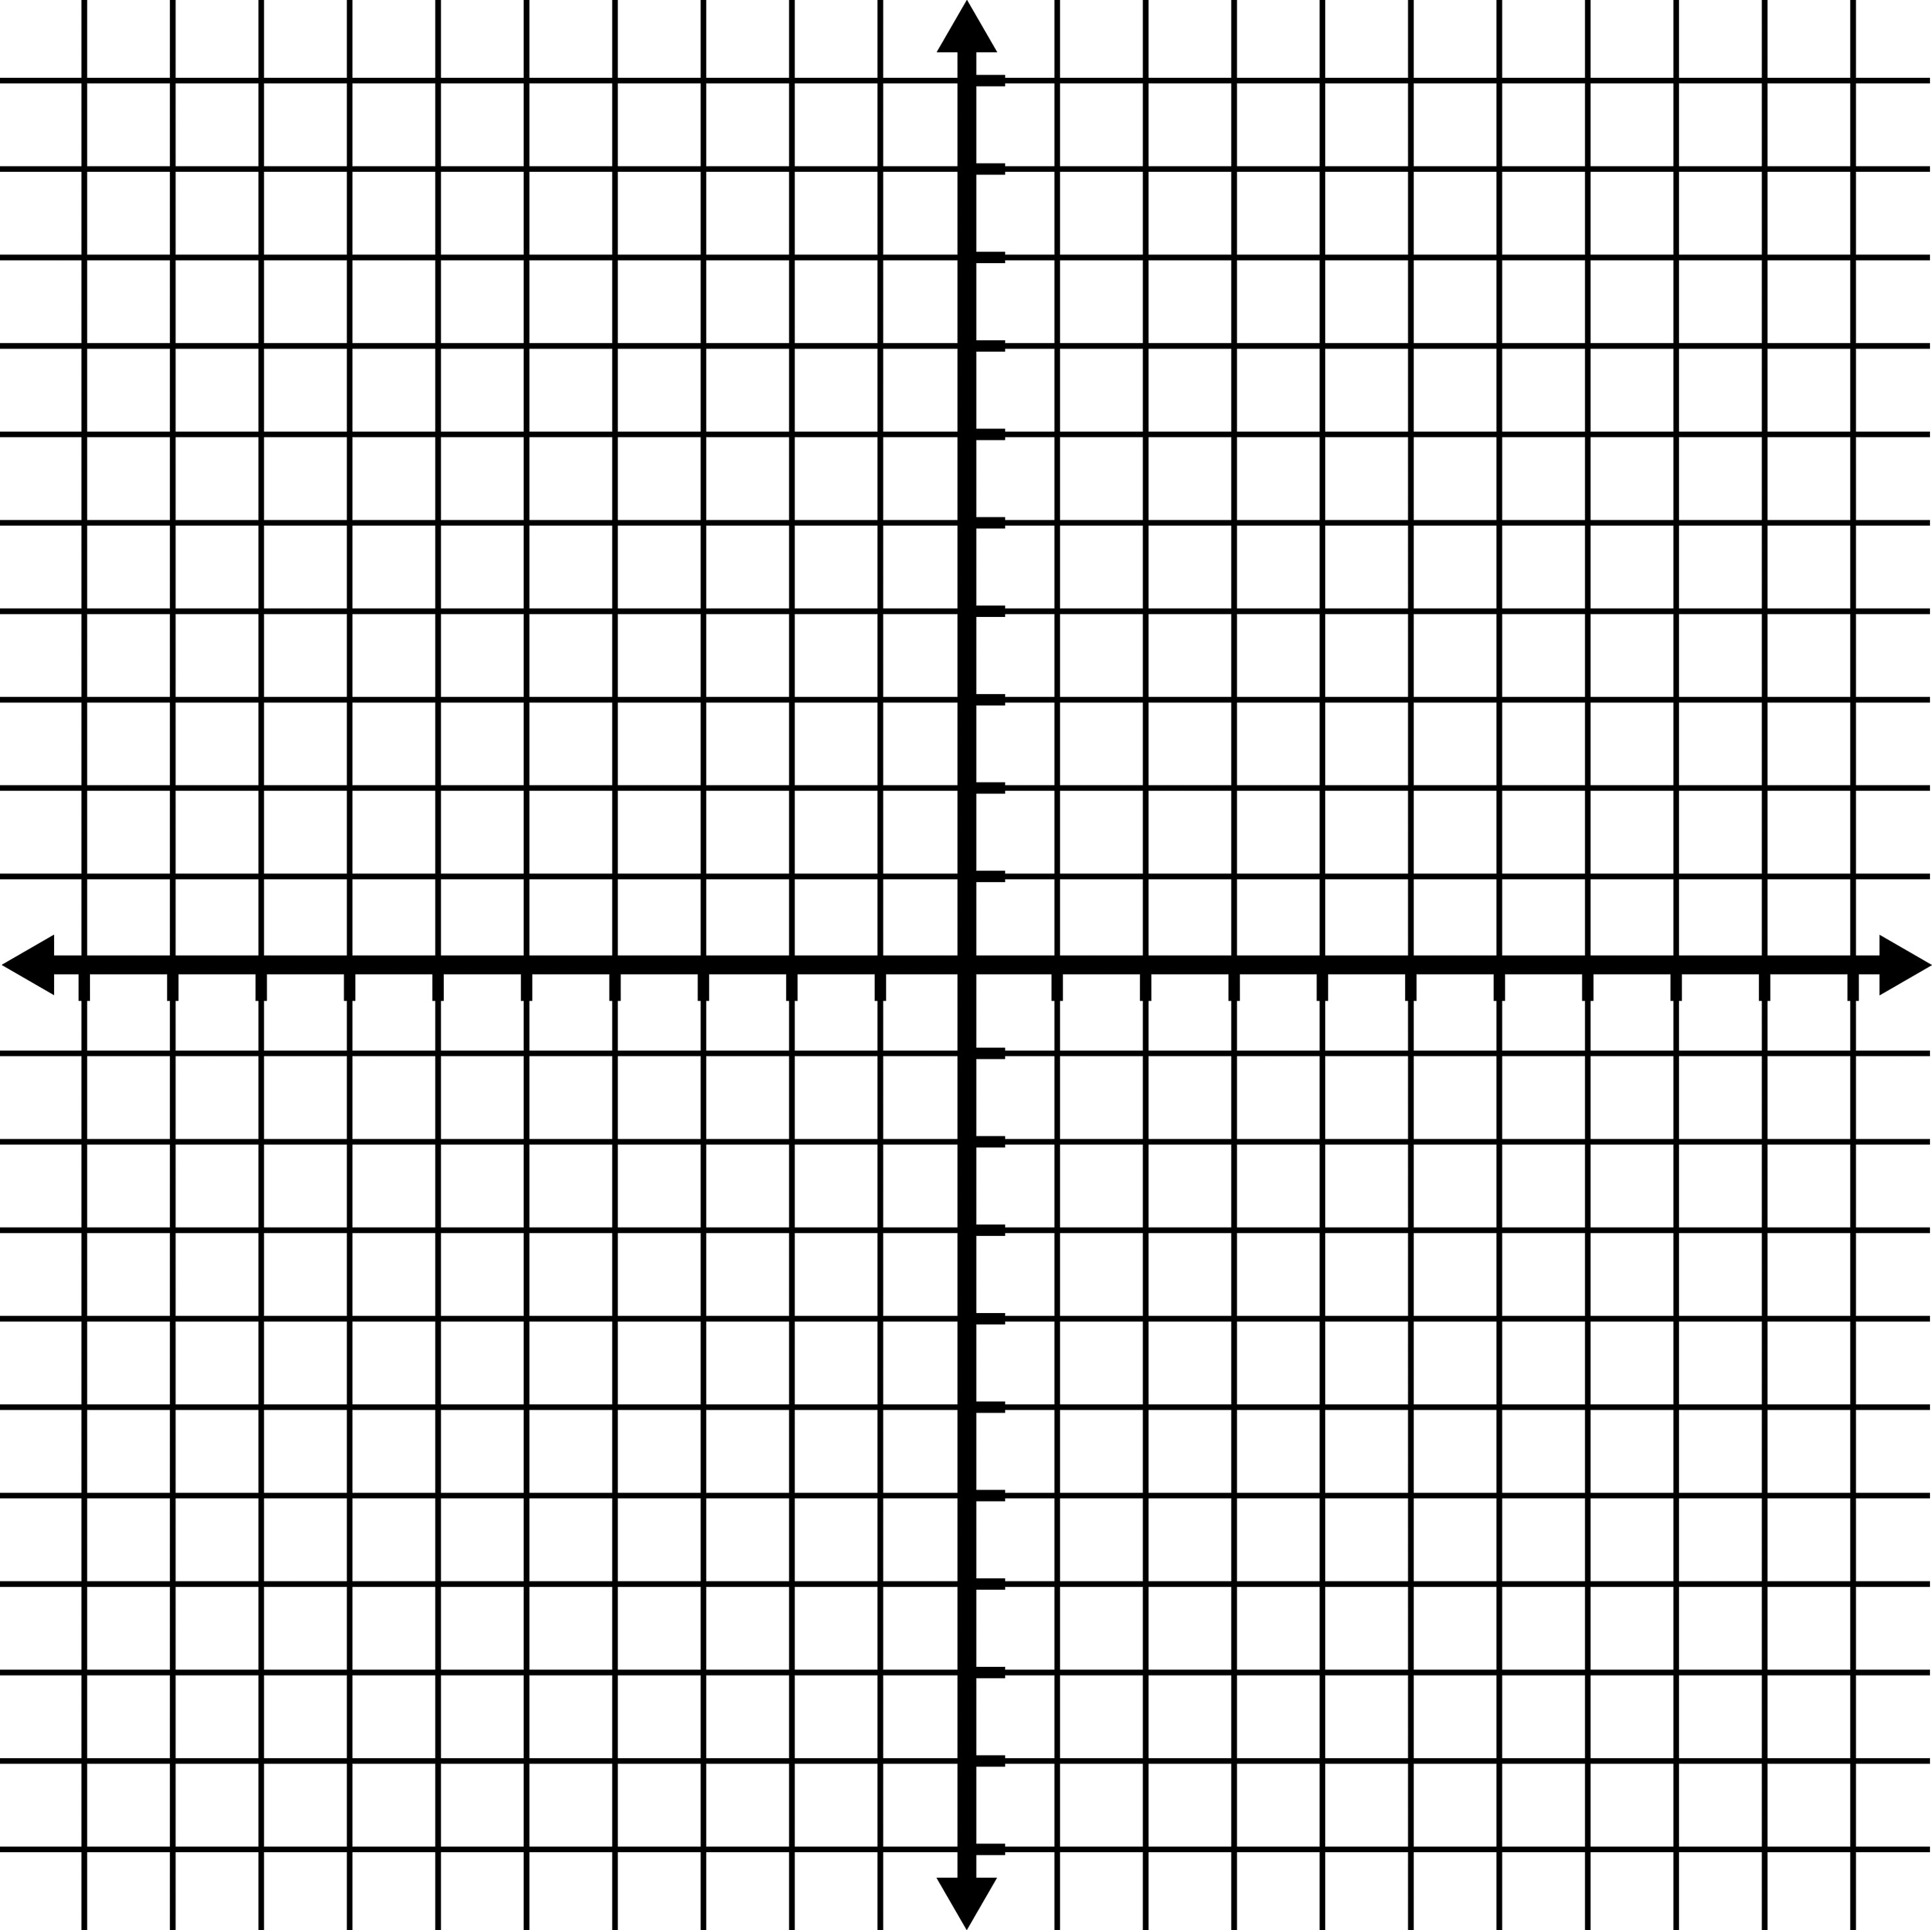 -10 To 10 Coordinate Grid With Grid Lines Shown, But No